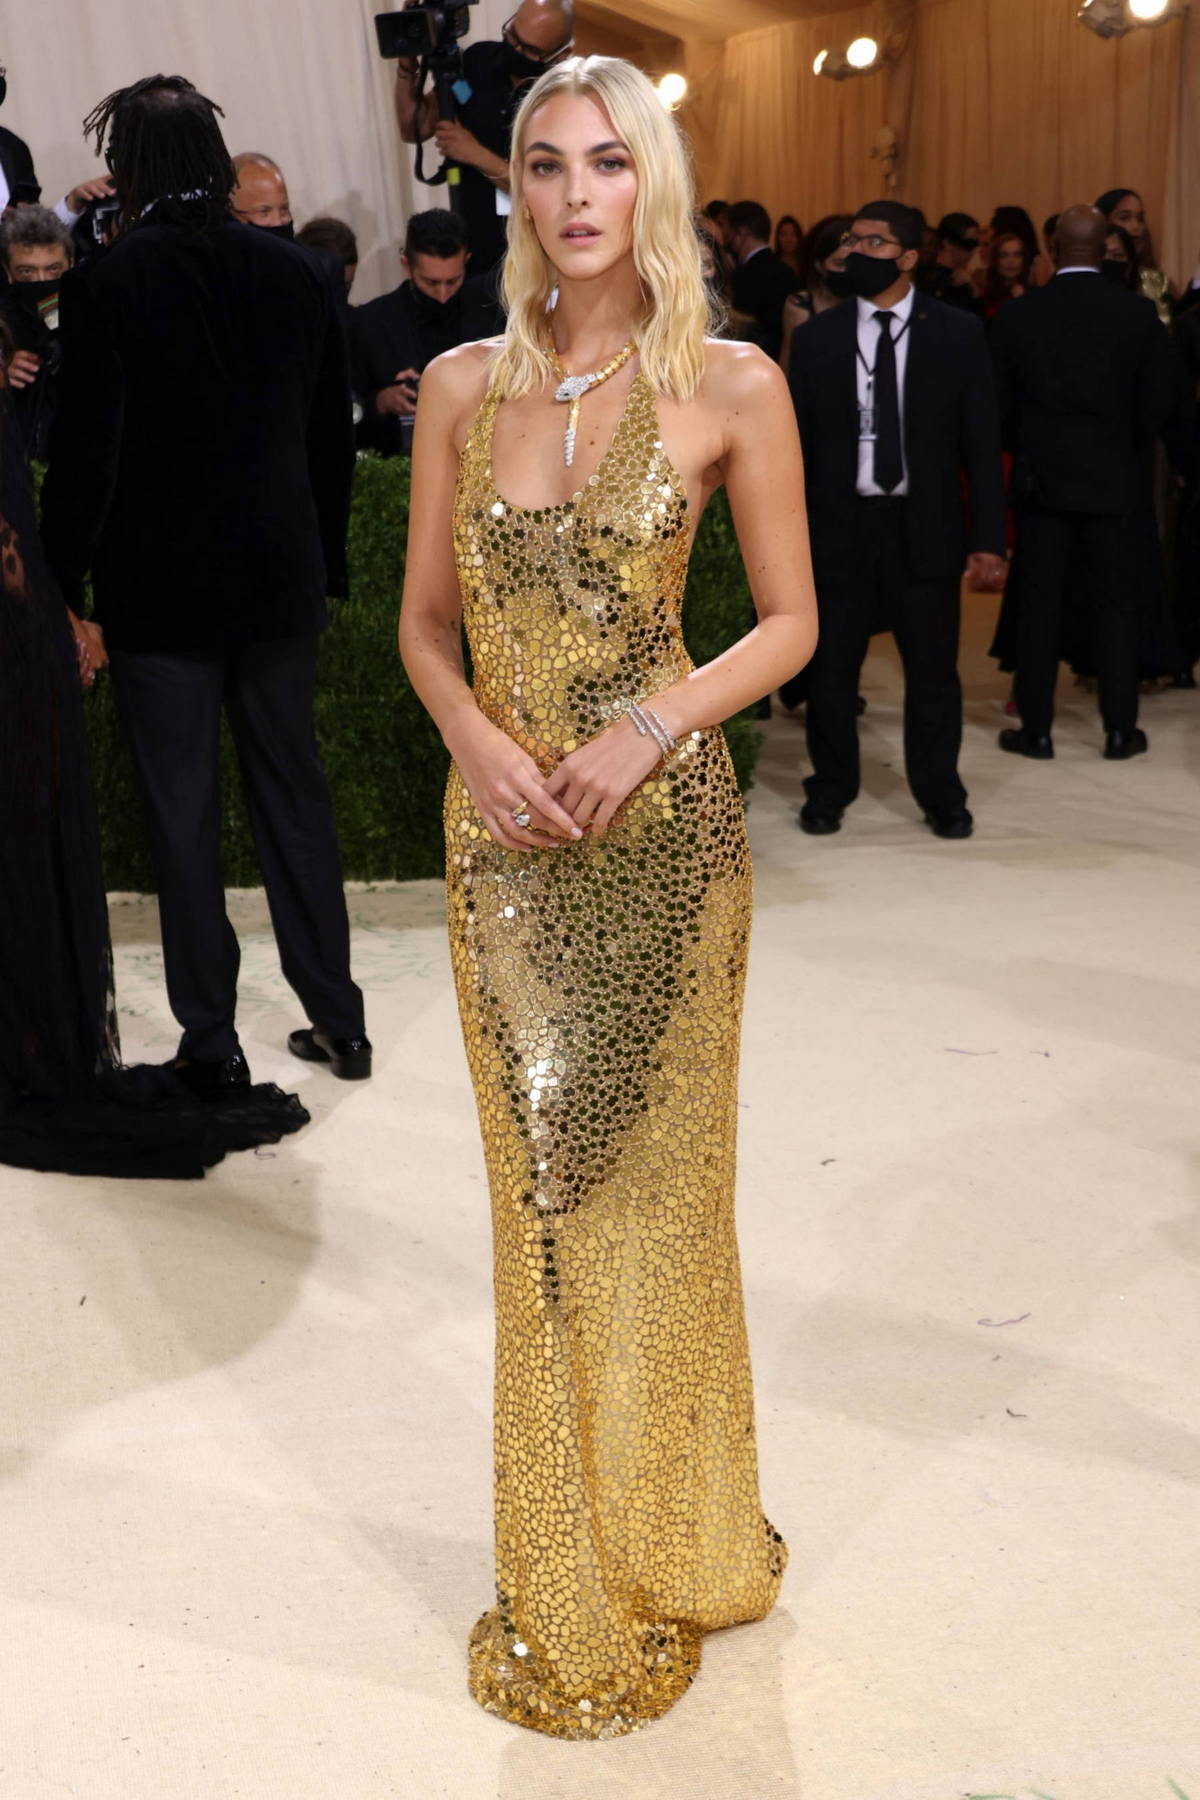 Vittoria Ceretti attends The Met Gala Celebrating In America: A Lexicon Of Fashion at Metropolitan Museum of Art in New York City